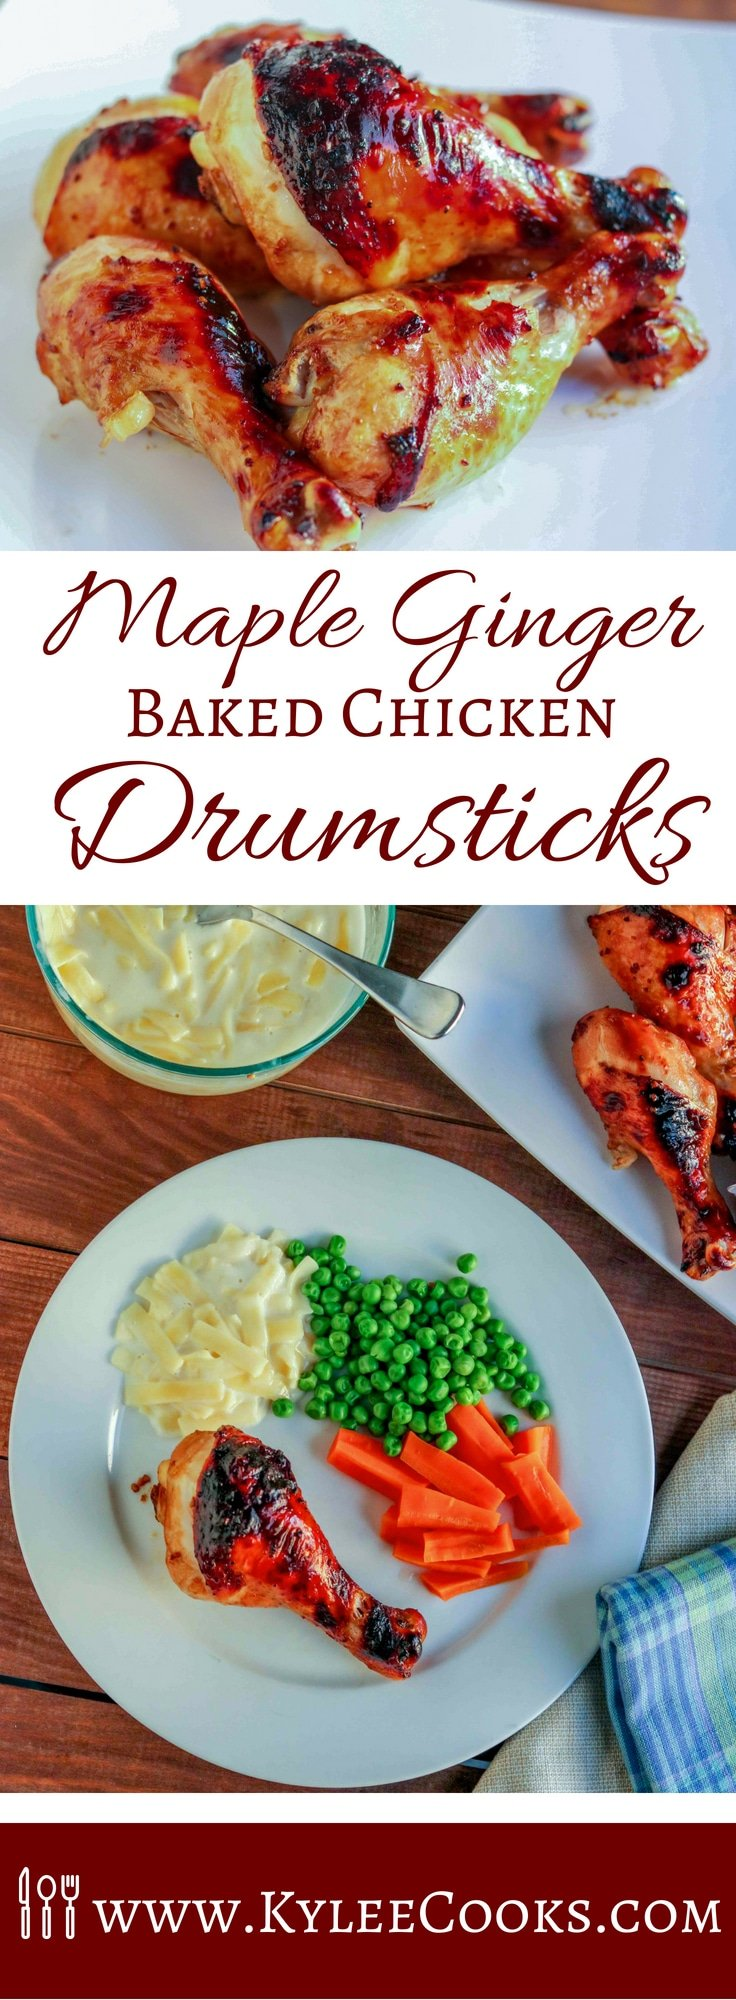 A super easy weeknight dinner, these Maple Ginger Baked Chicken Drumsticks have an amazing flavor with sweet maple and pops of ginger in every bite. Everyone will love it! #maple #ginger #chicken #weeknight #dinner #recipe #kyleecooks